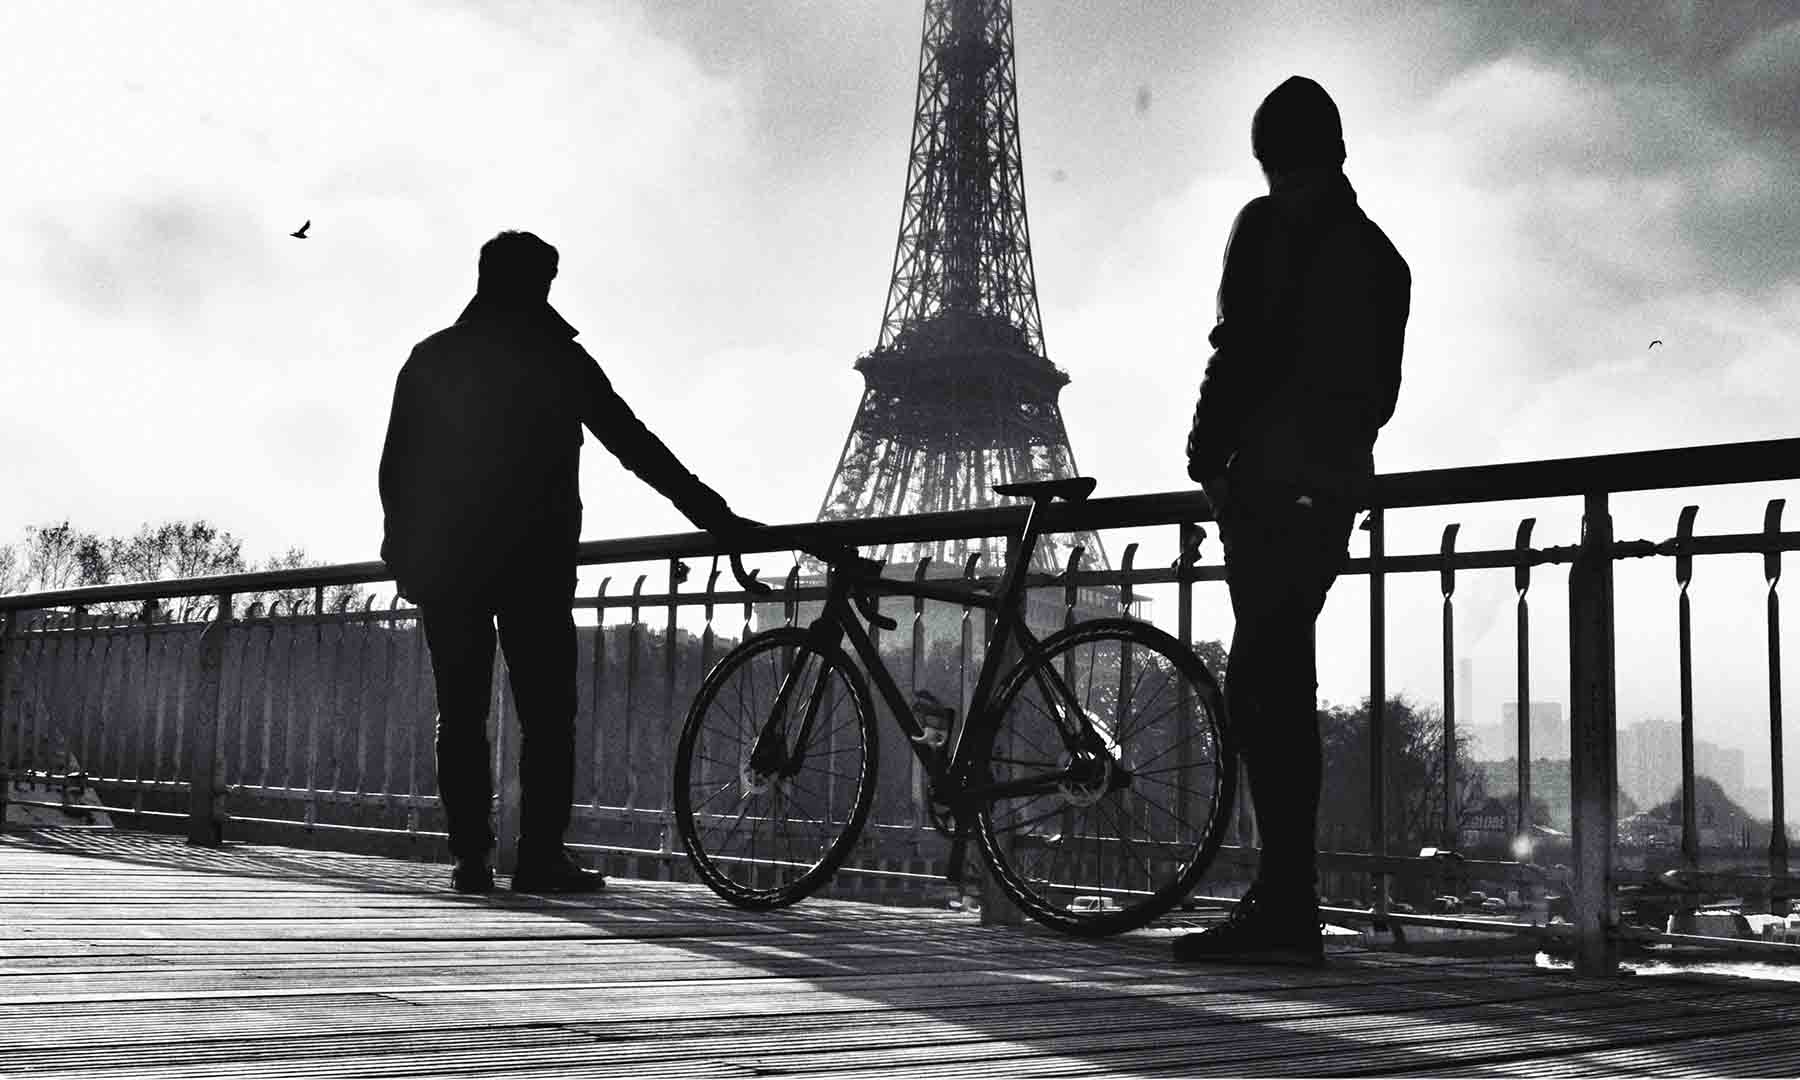 Sculpteo Bike Project: From Paris to Las Vegas